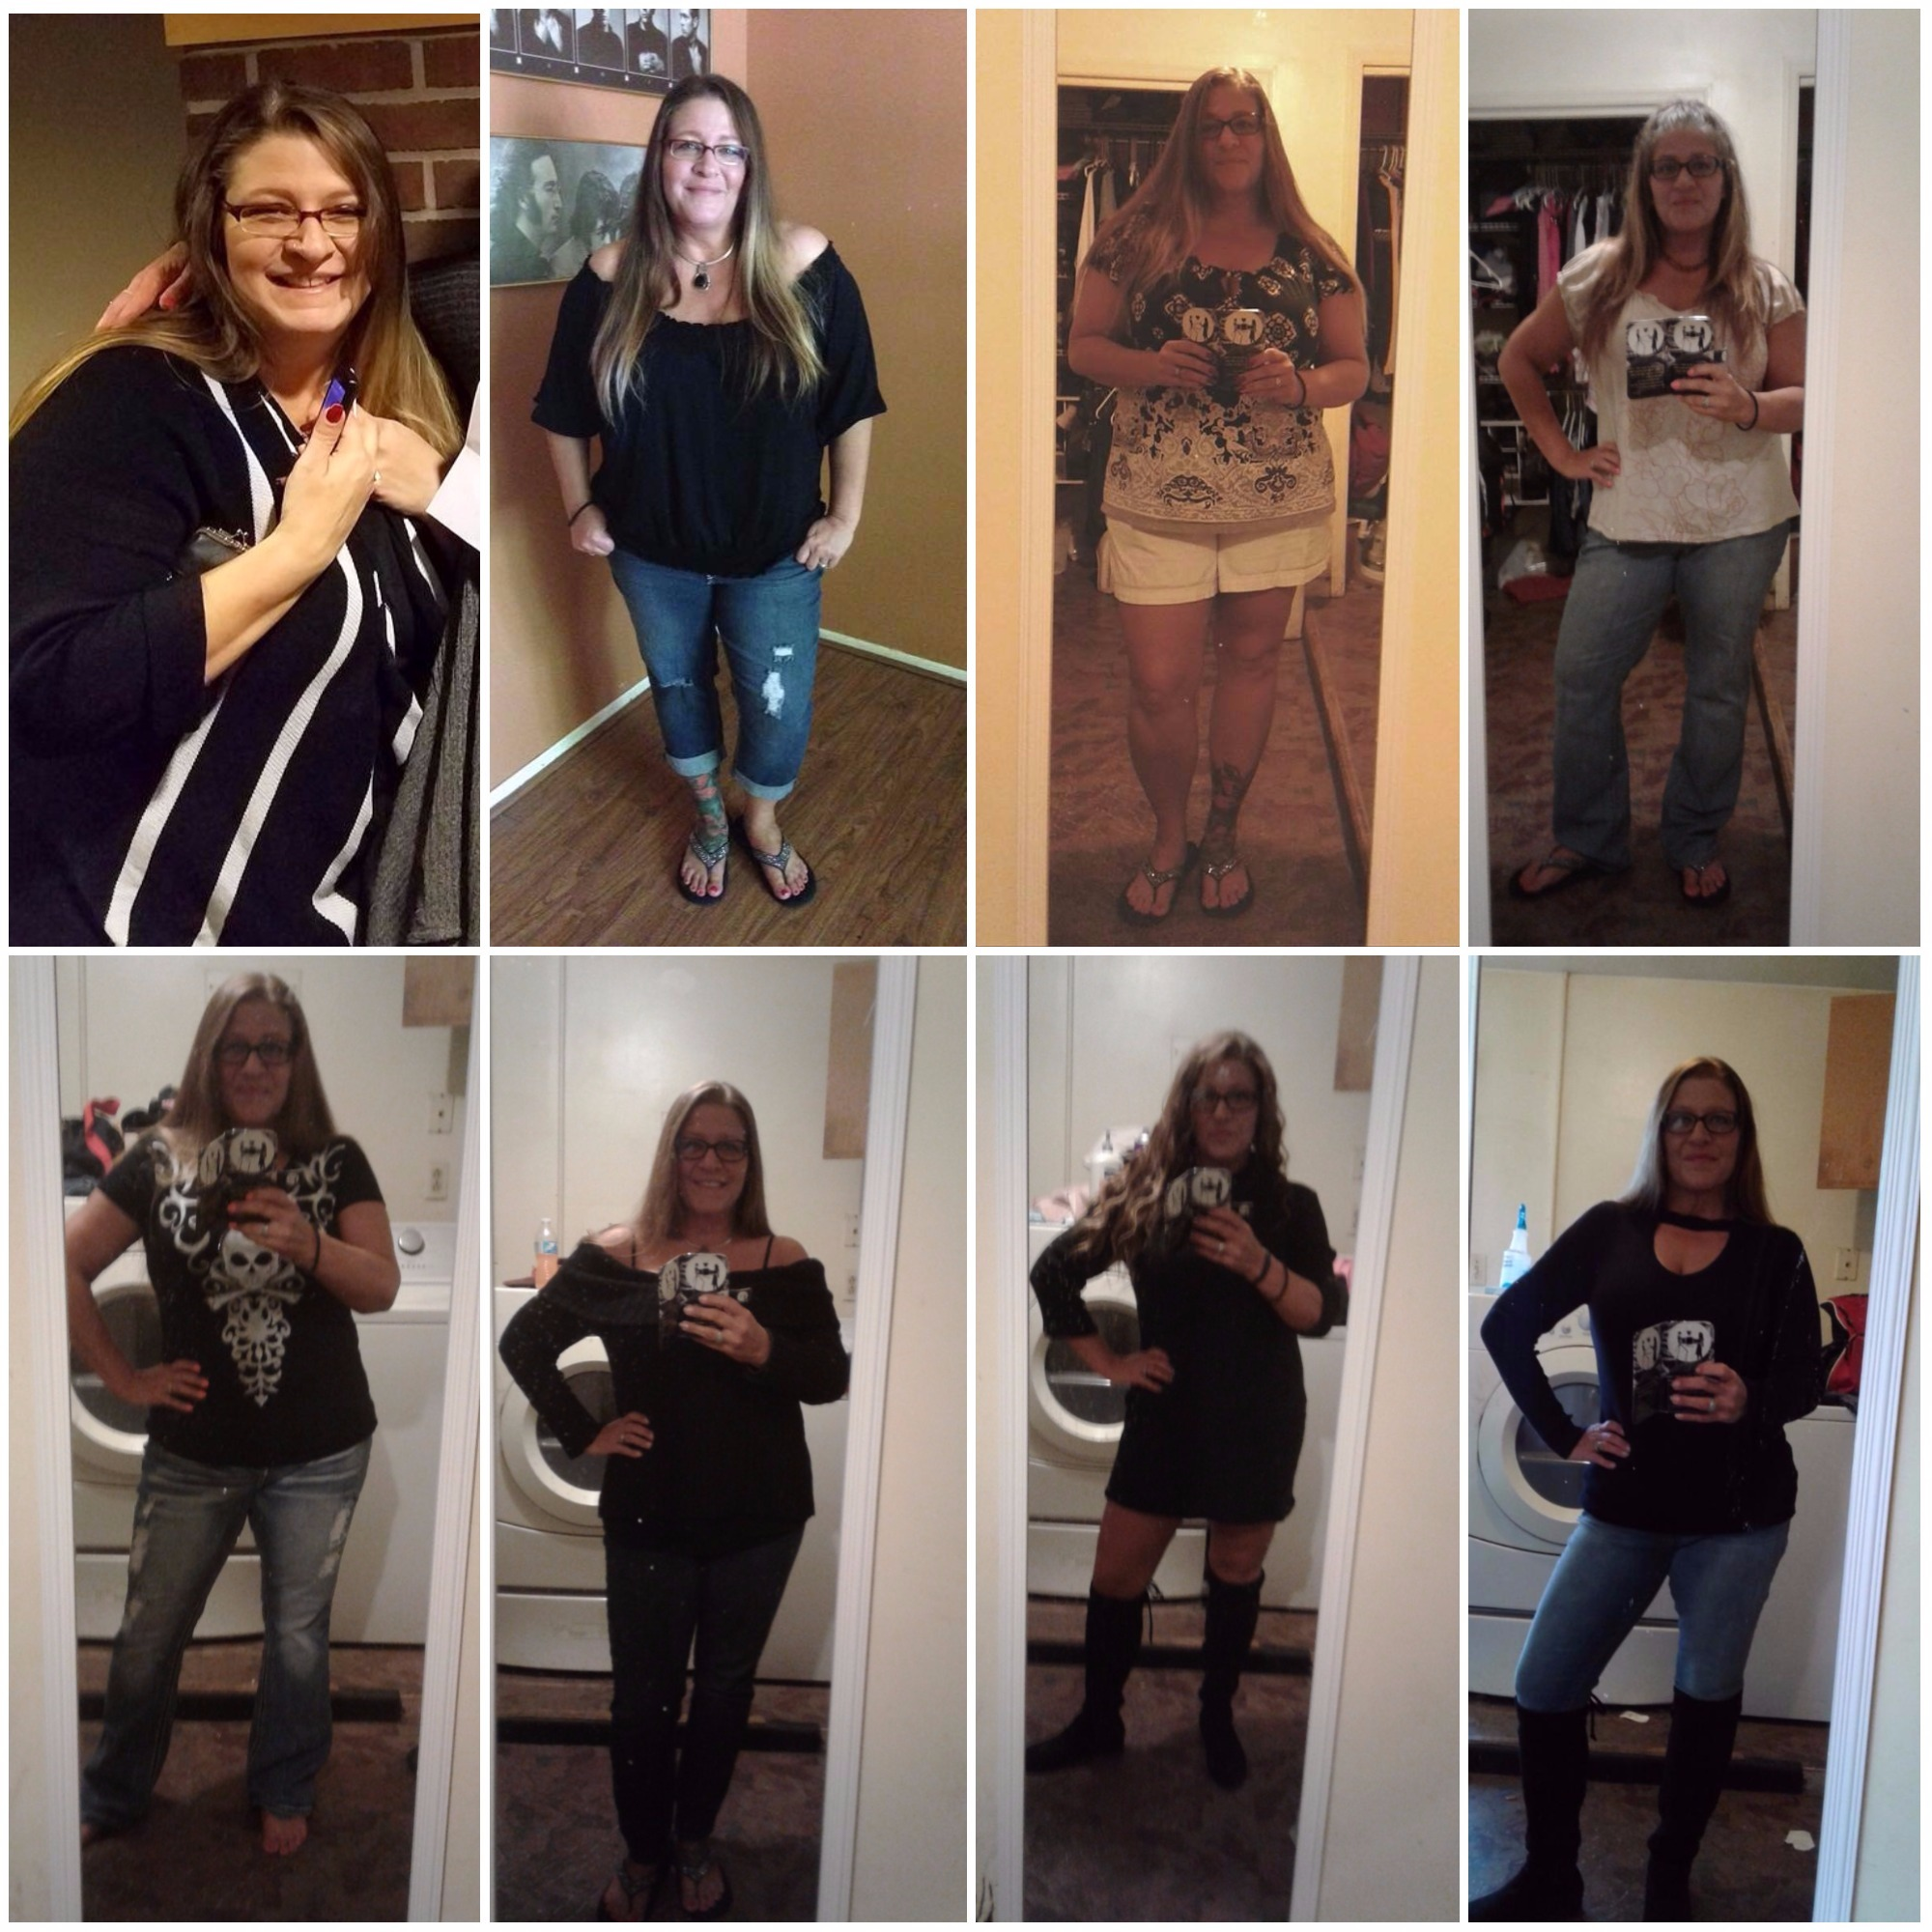 Tabitha lost 90 pounds! See my before and after weight loss pictures, and read amazing weight loss success stories from real women and their best weight loss diet plans and programs. Motivation to lose weight with walking and inspiration from before and after weightloss pics and photos.